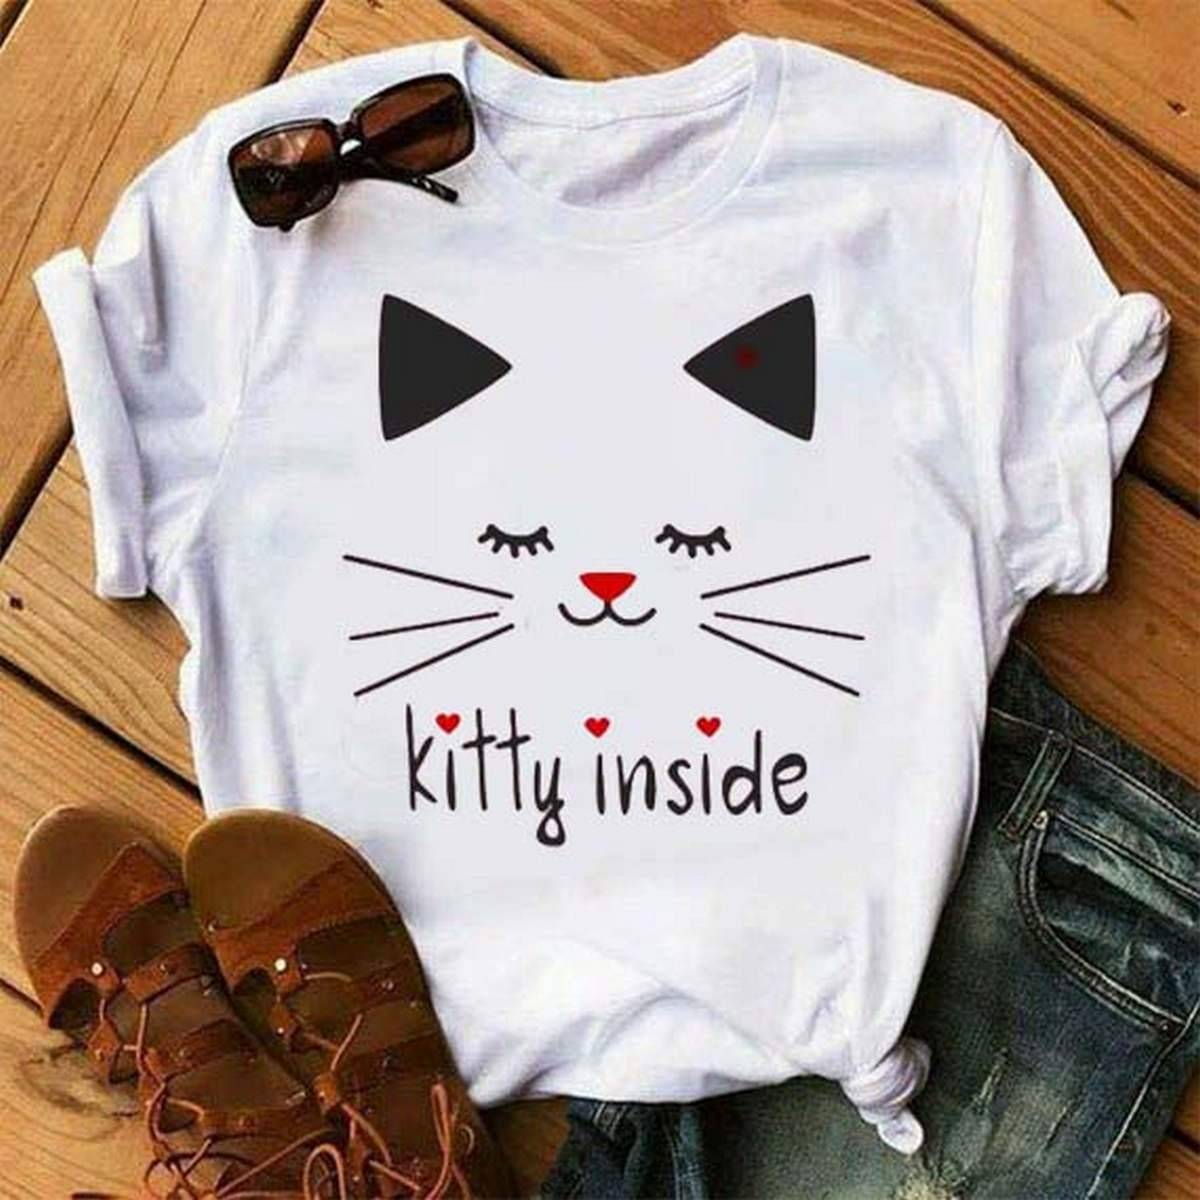 T Shirt for girls new and stylish design (kitty Inside),Summer Wear ,Export Quality , Round Neck,